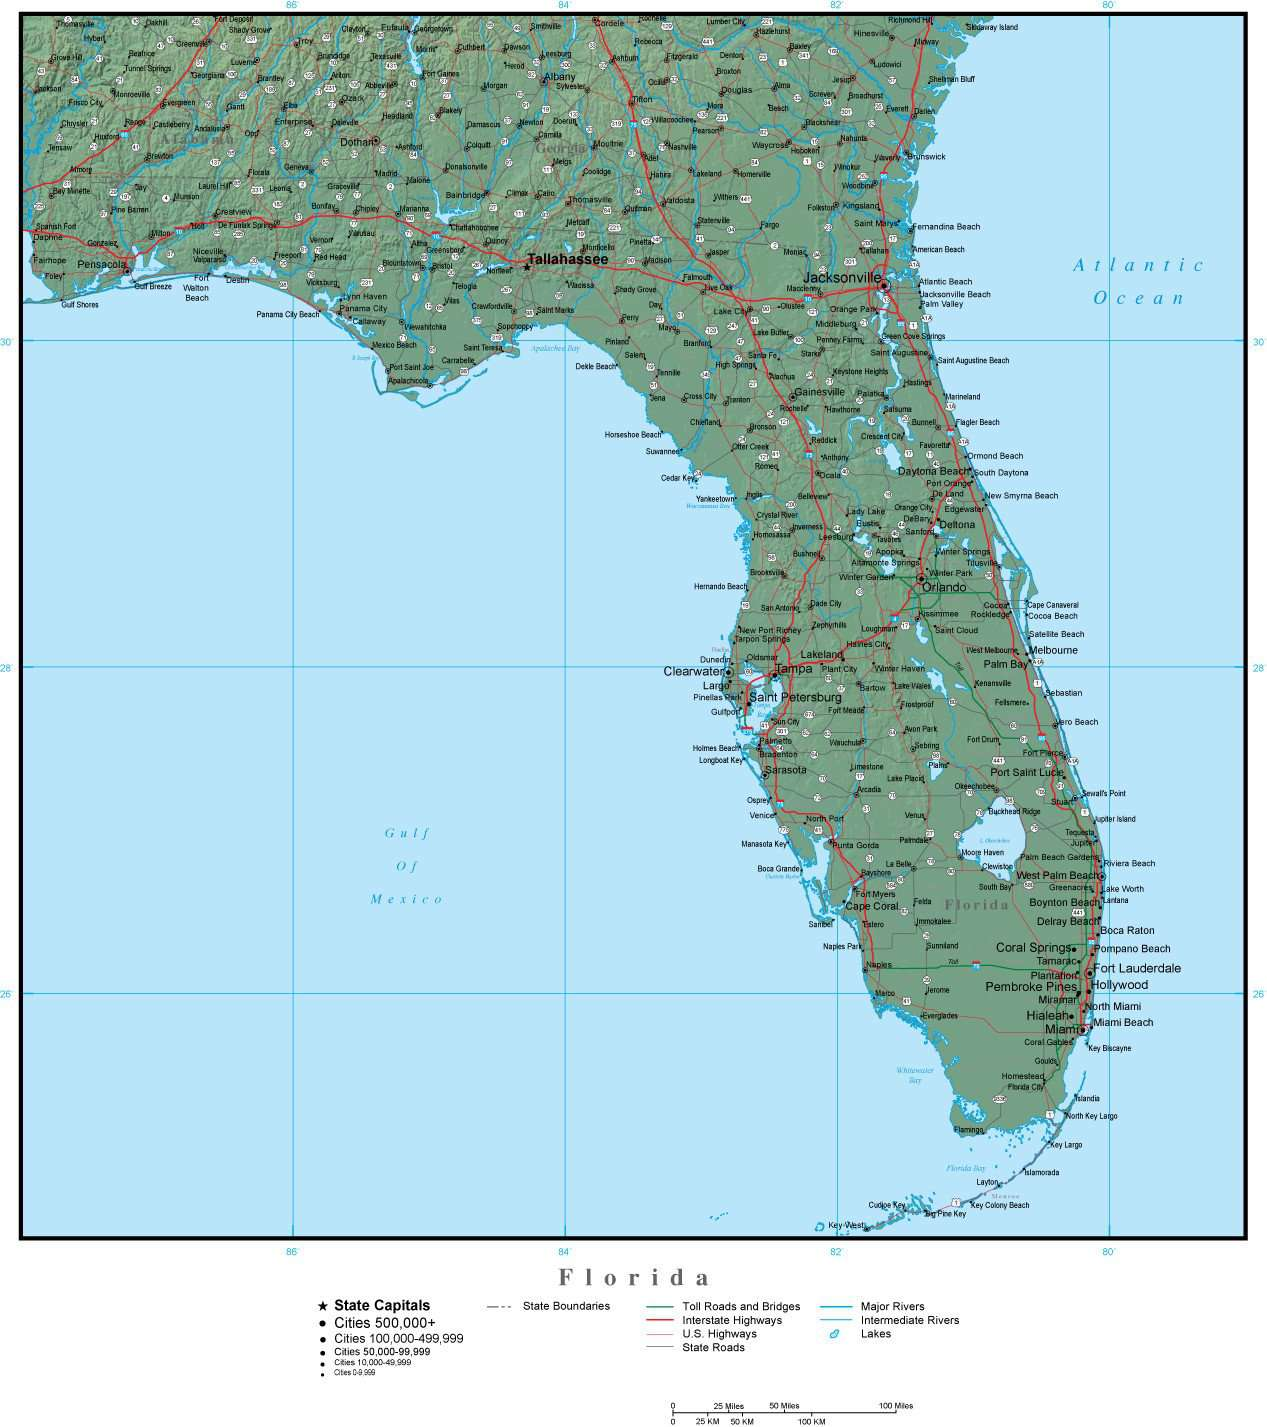 Florida On Usa Map.Florida Map Plus Terrain With Cities Roads And Water Features